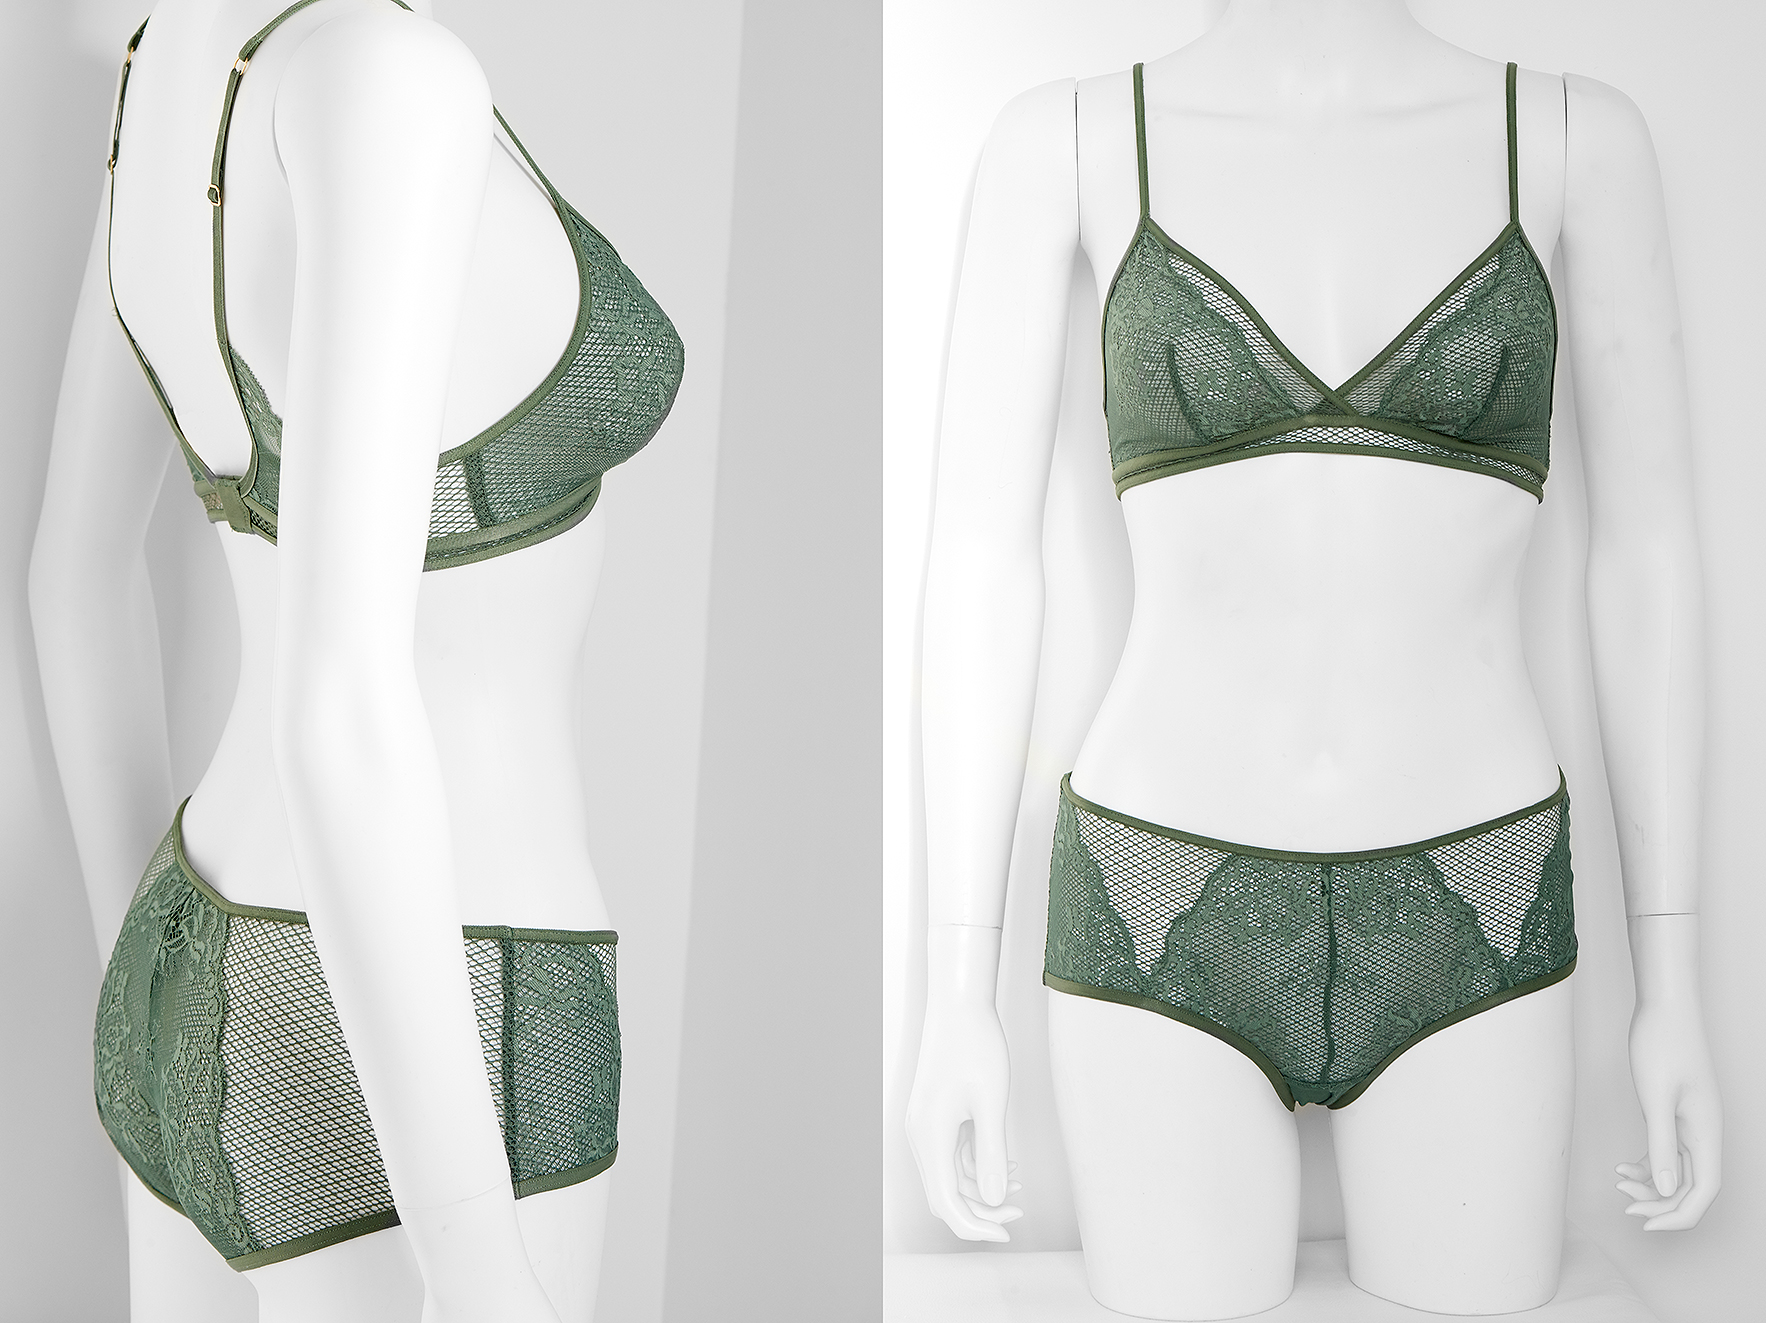 the-highstreet-edit-part-2-green-lace-lingerie-h&m-06